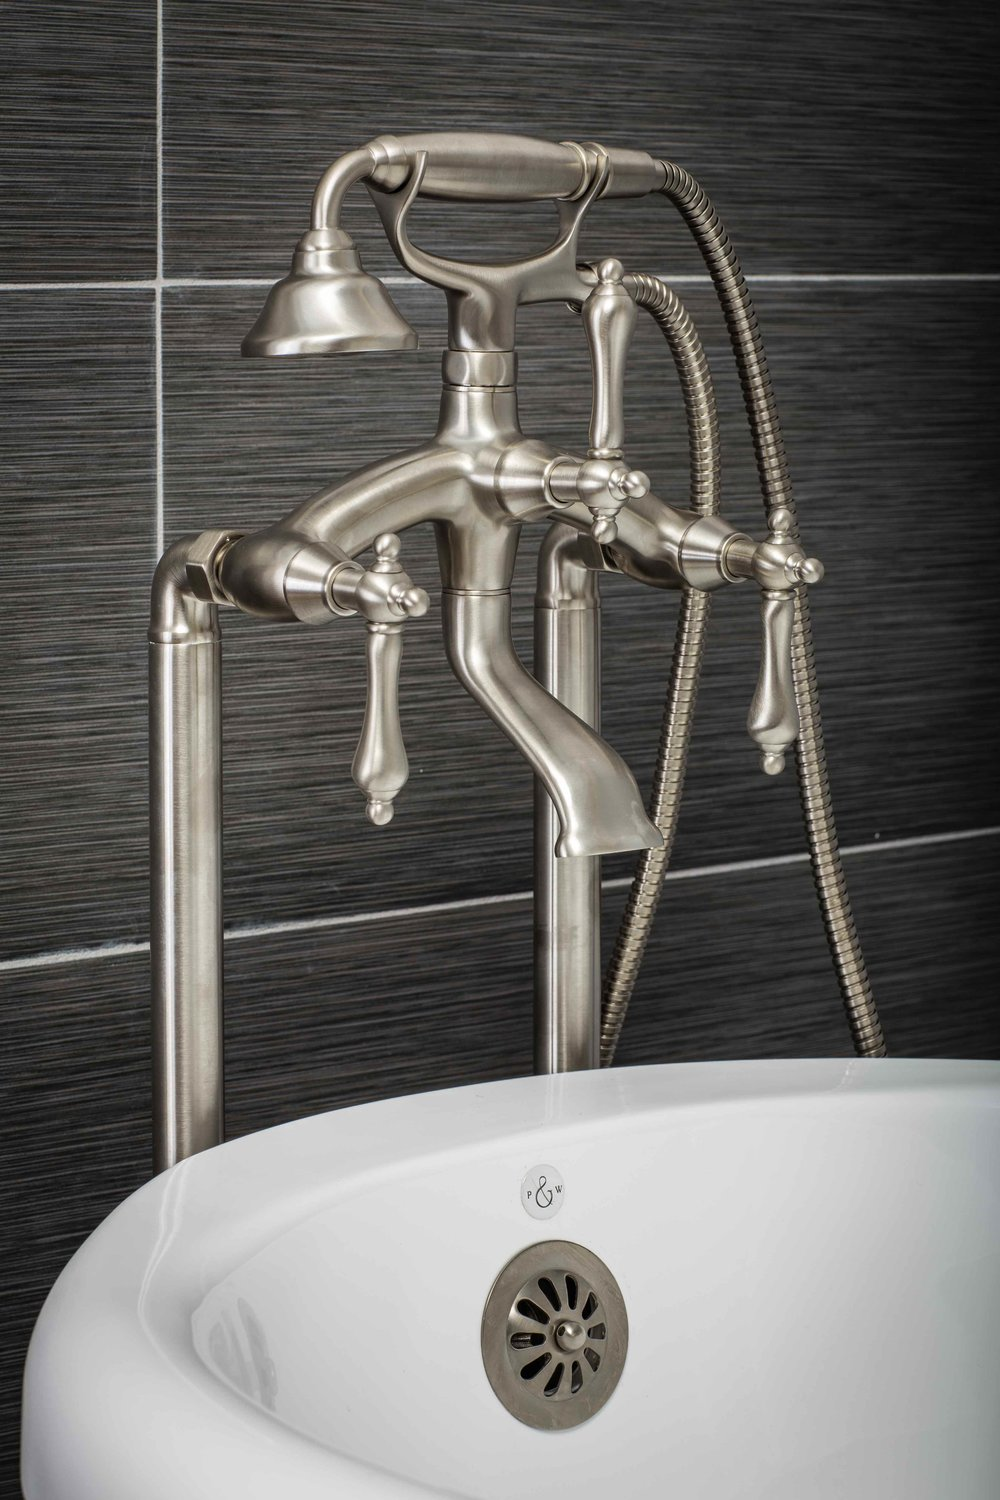 Vintage Floor Mount Tub Filler Faucet in Brushed Nickel with Levers ...